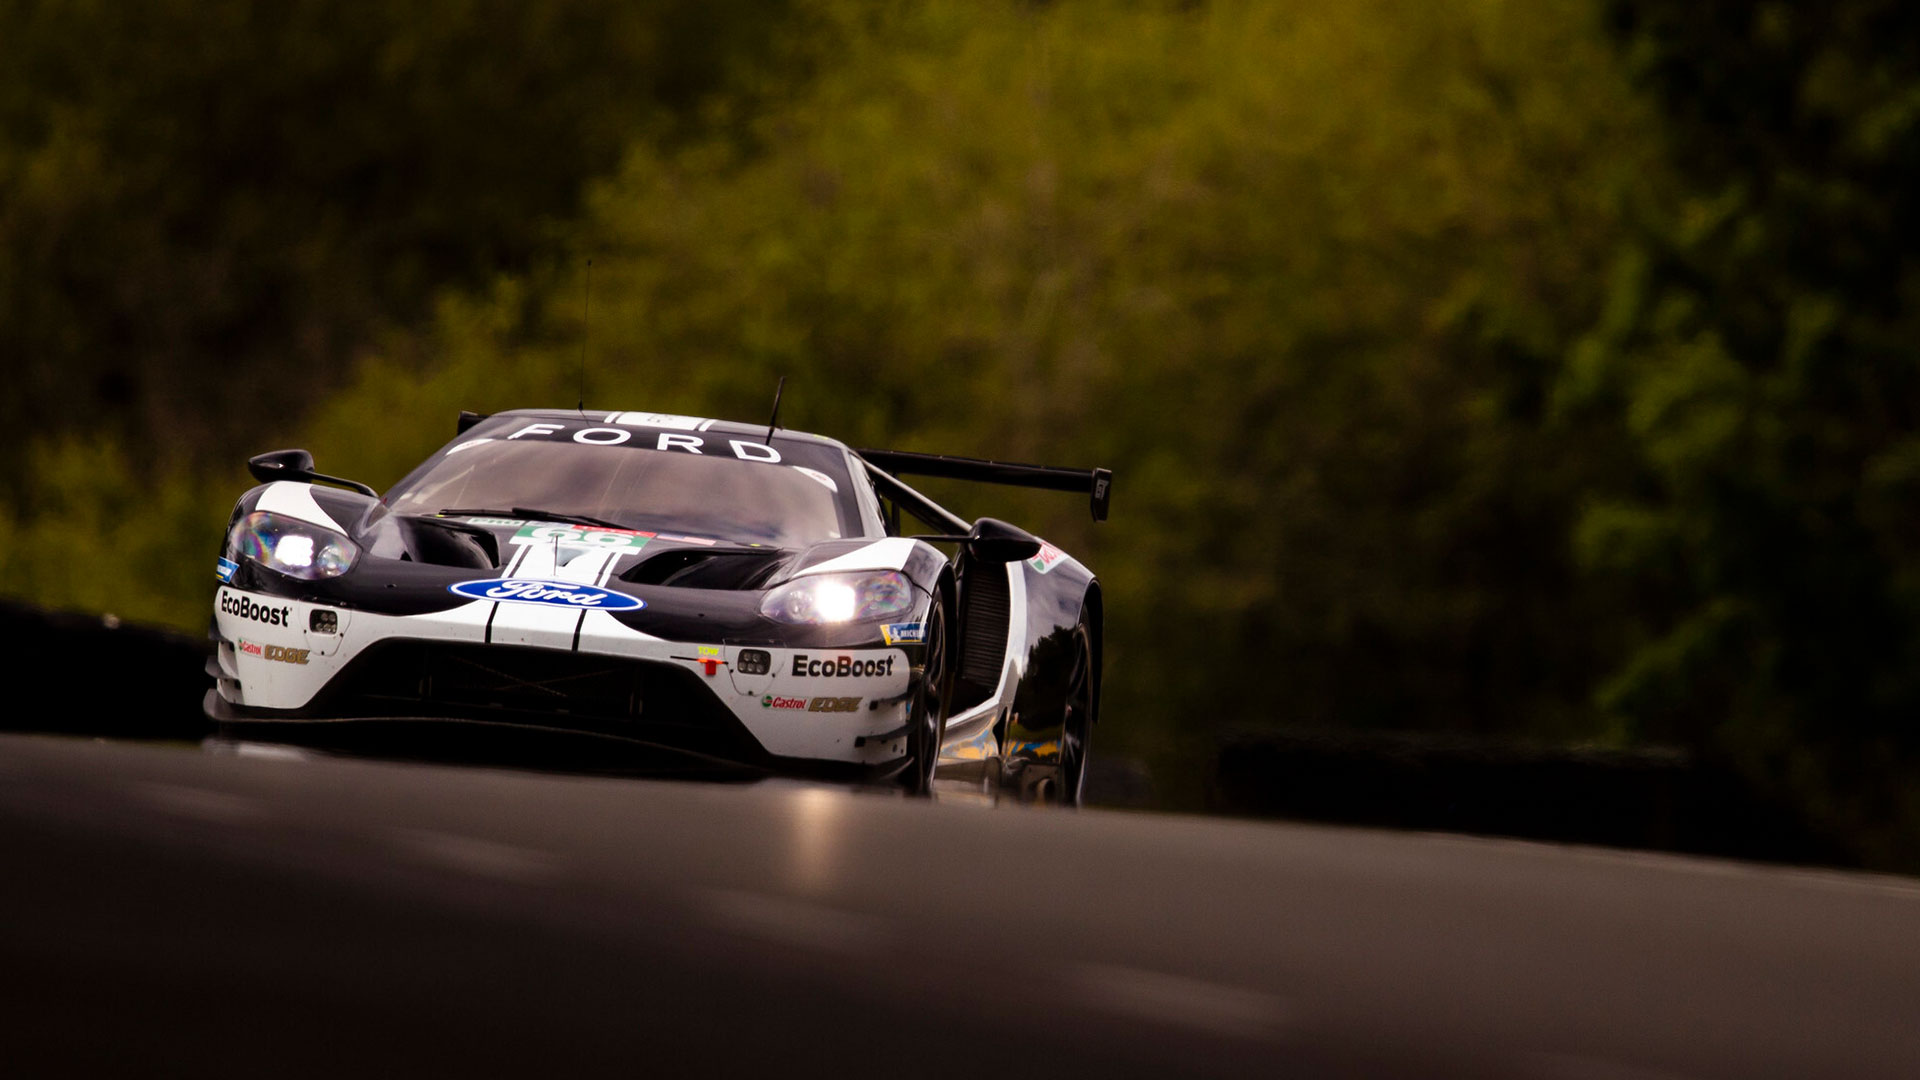 Ford GTE coming over hill